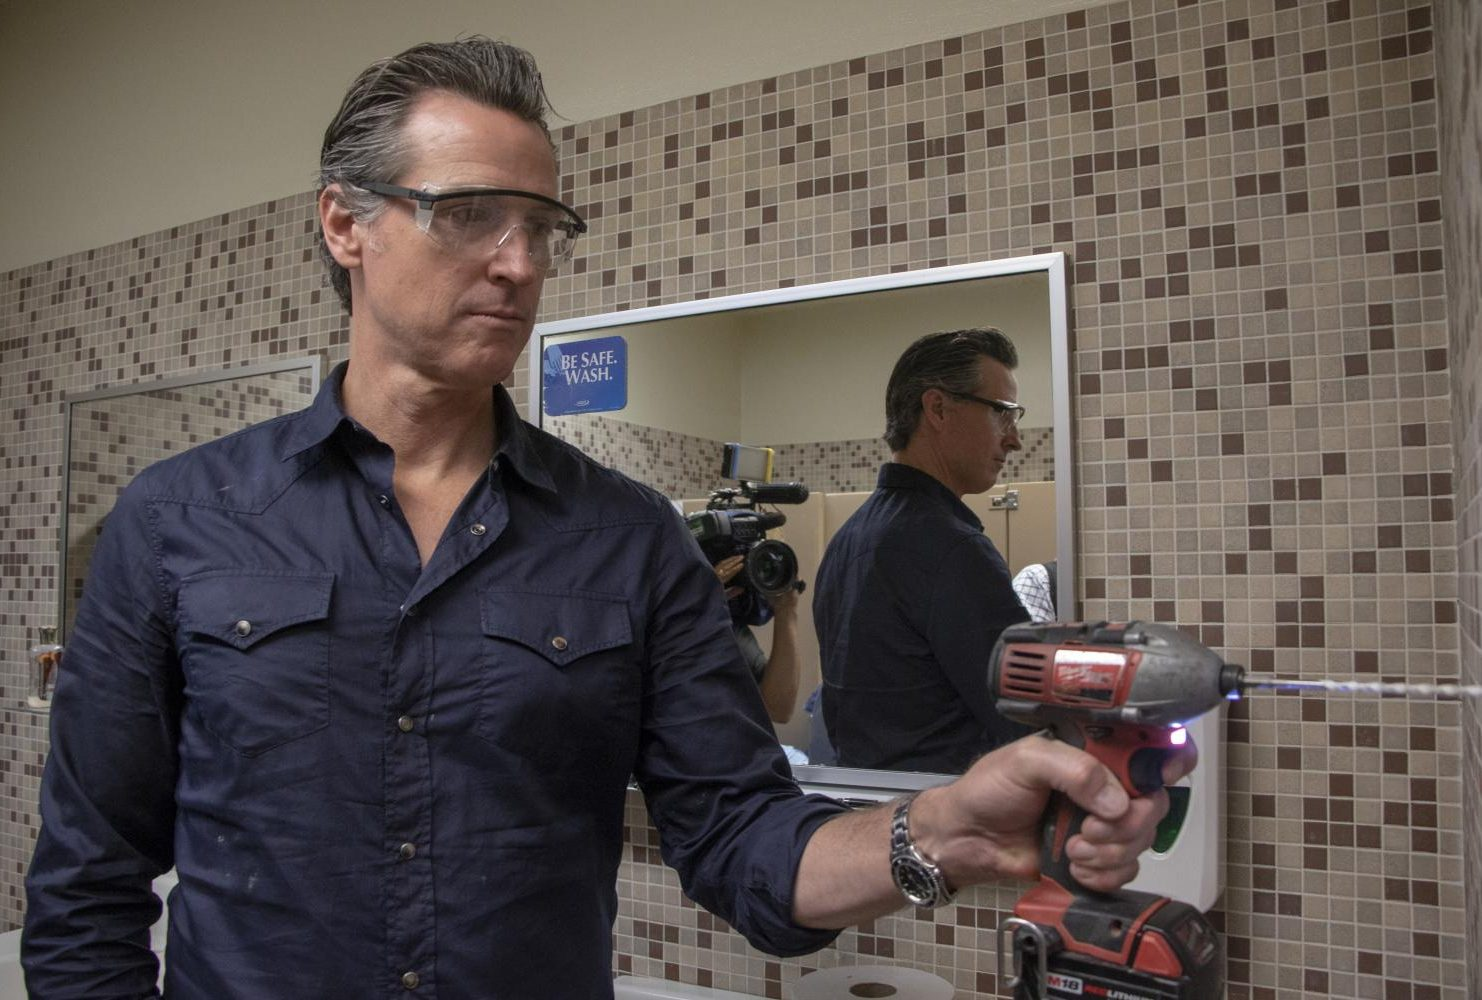 Governor Gavin Newsom assist Maria Arambula with replacing the paper towel dispenser at American River College during International Workers' Day on May 1, 2019. (Photo by Ashley Hayes-Stone)